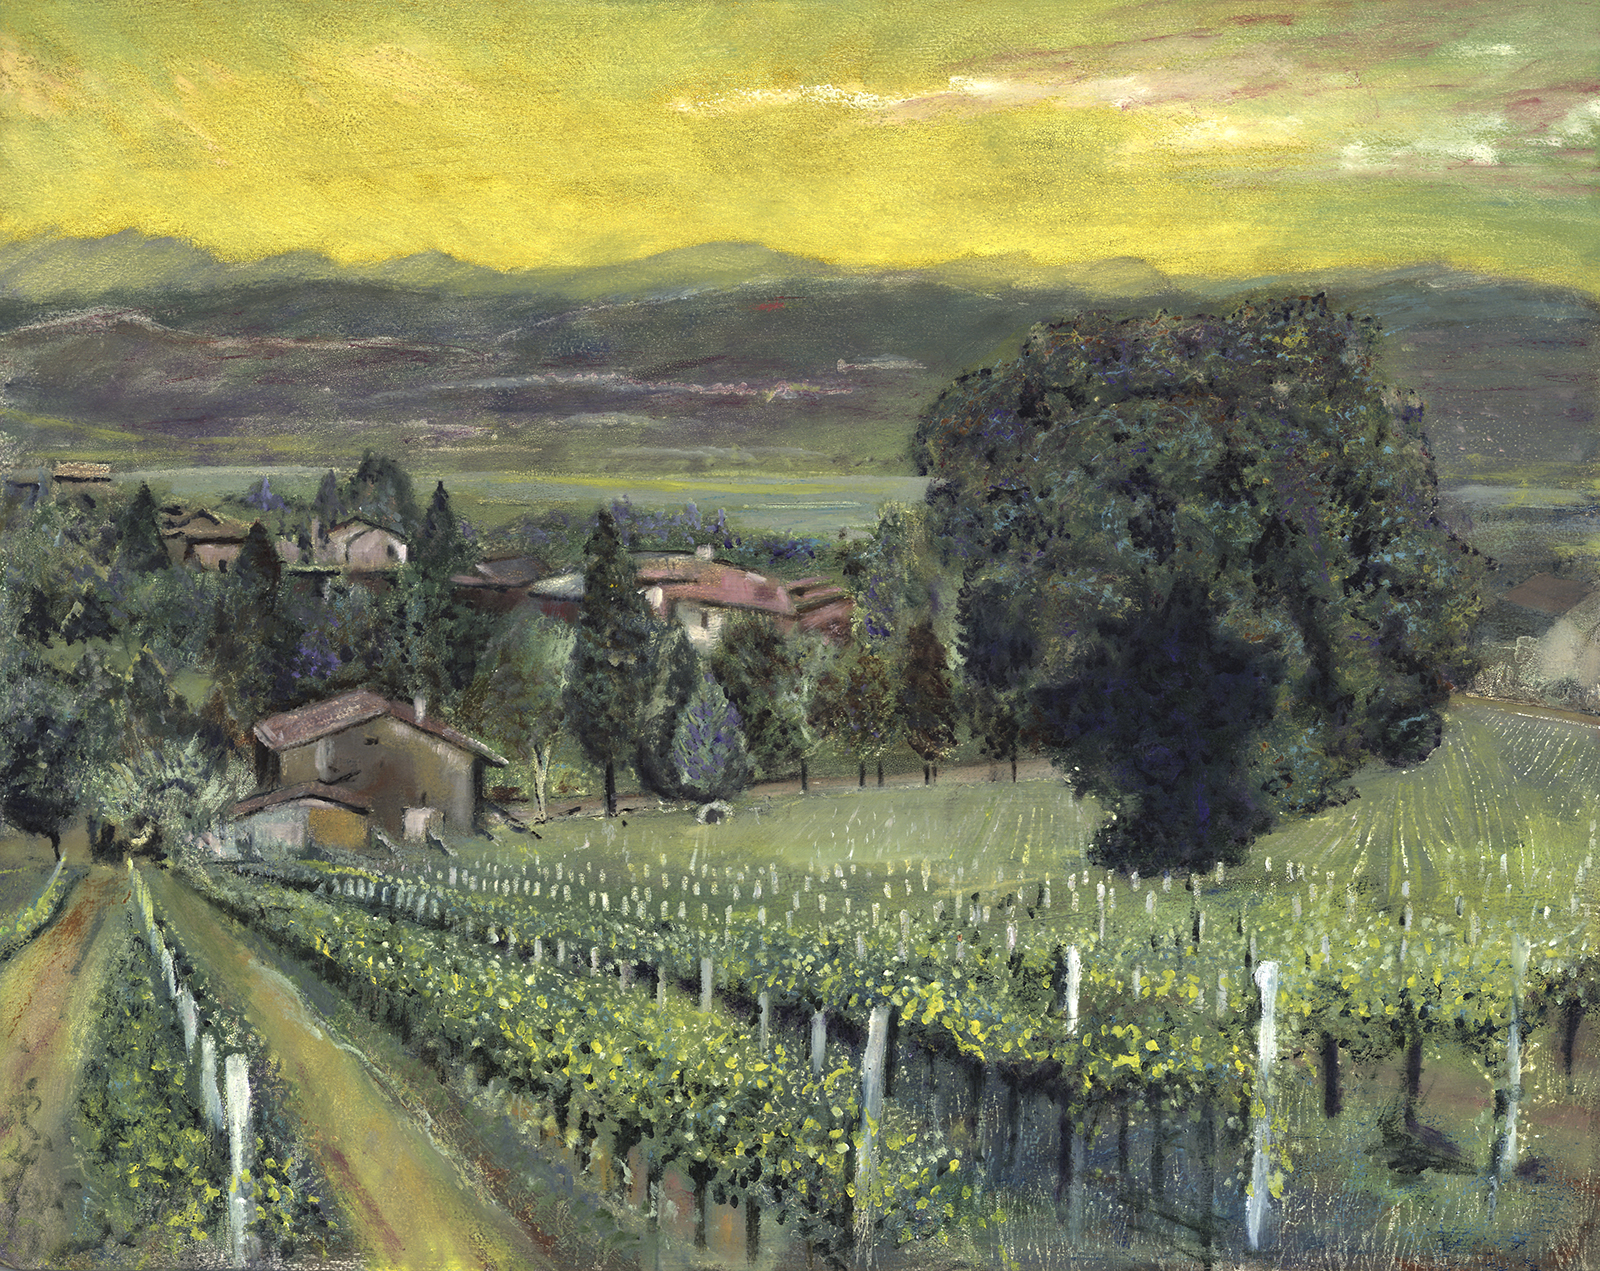 """Italian Vinyard"" Monteflco - Oil on Italian Panel Private Collection Jodi and Kerry SmithGiclee Limited Edition and canvas prints are available. Please visit the prints gallery."